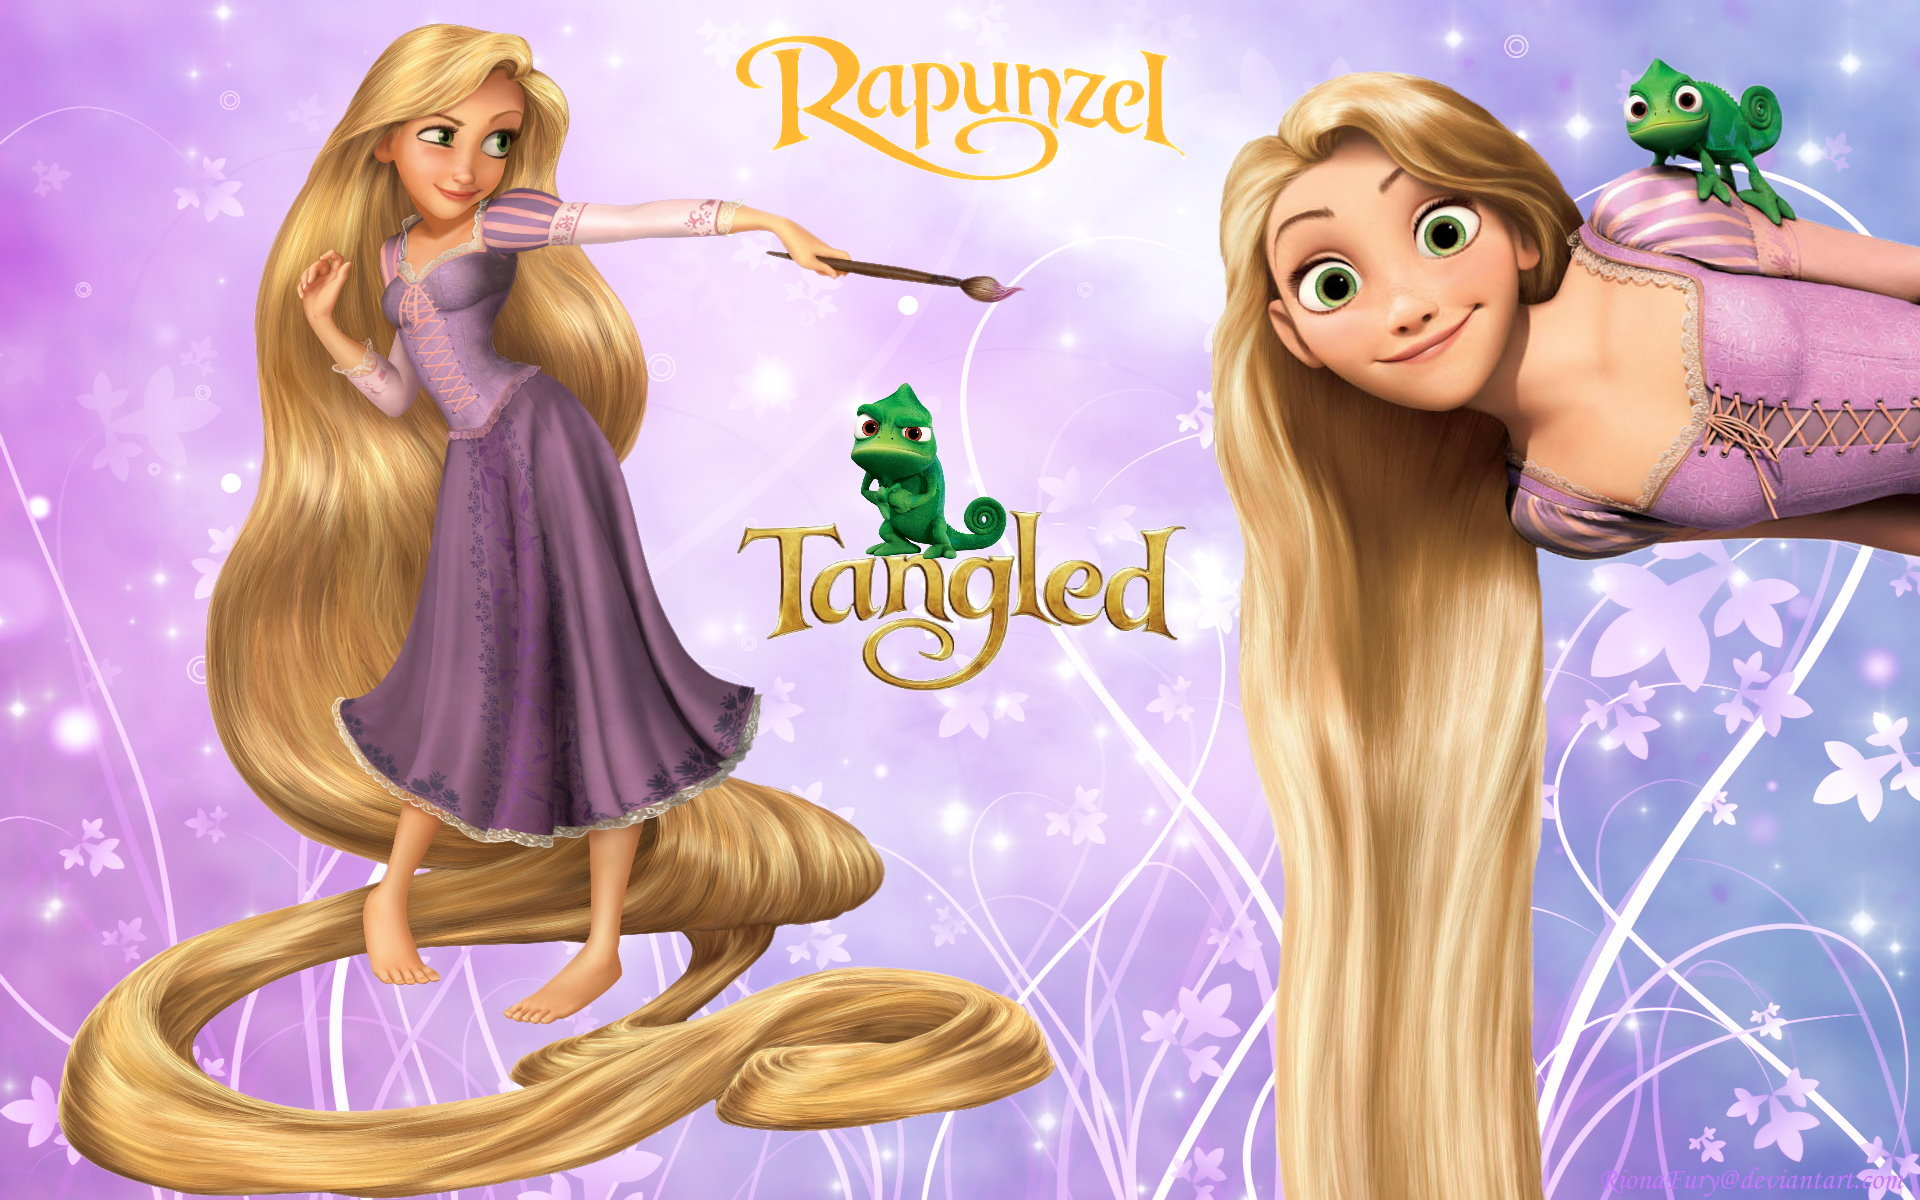 Tangled images Disney Princess Rapunzel HD wallpaper and background 1920x1200